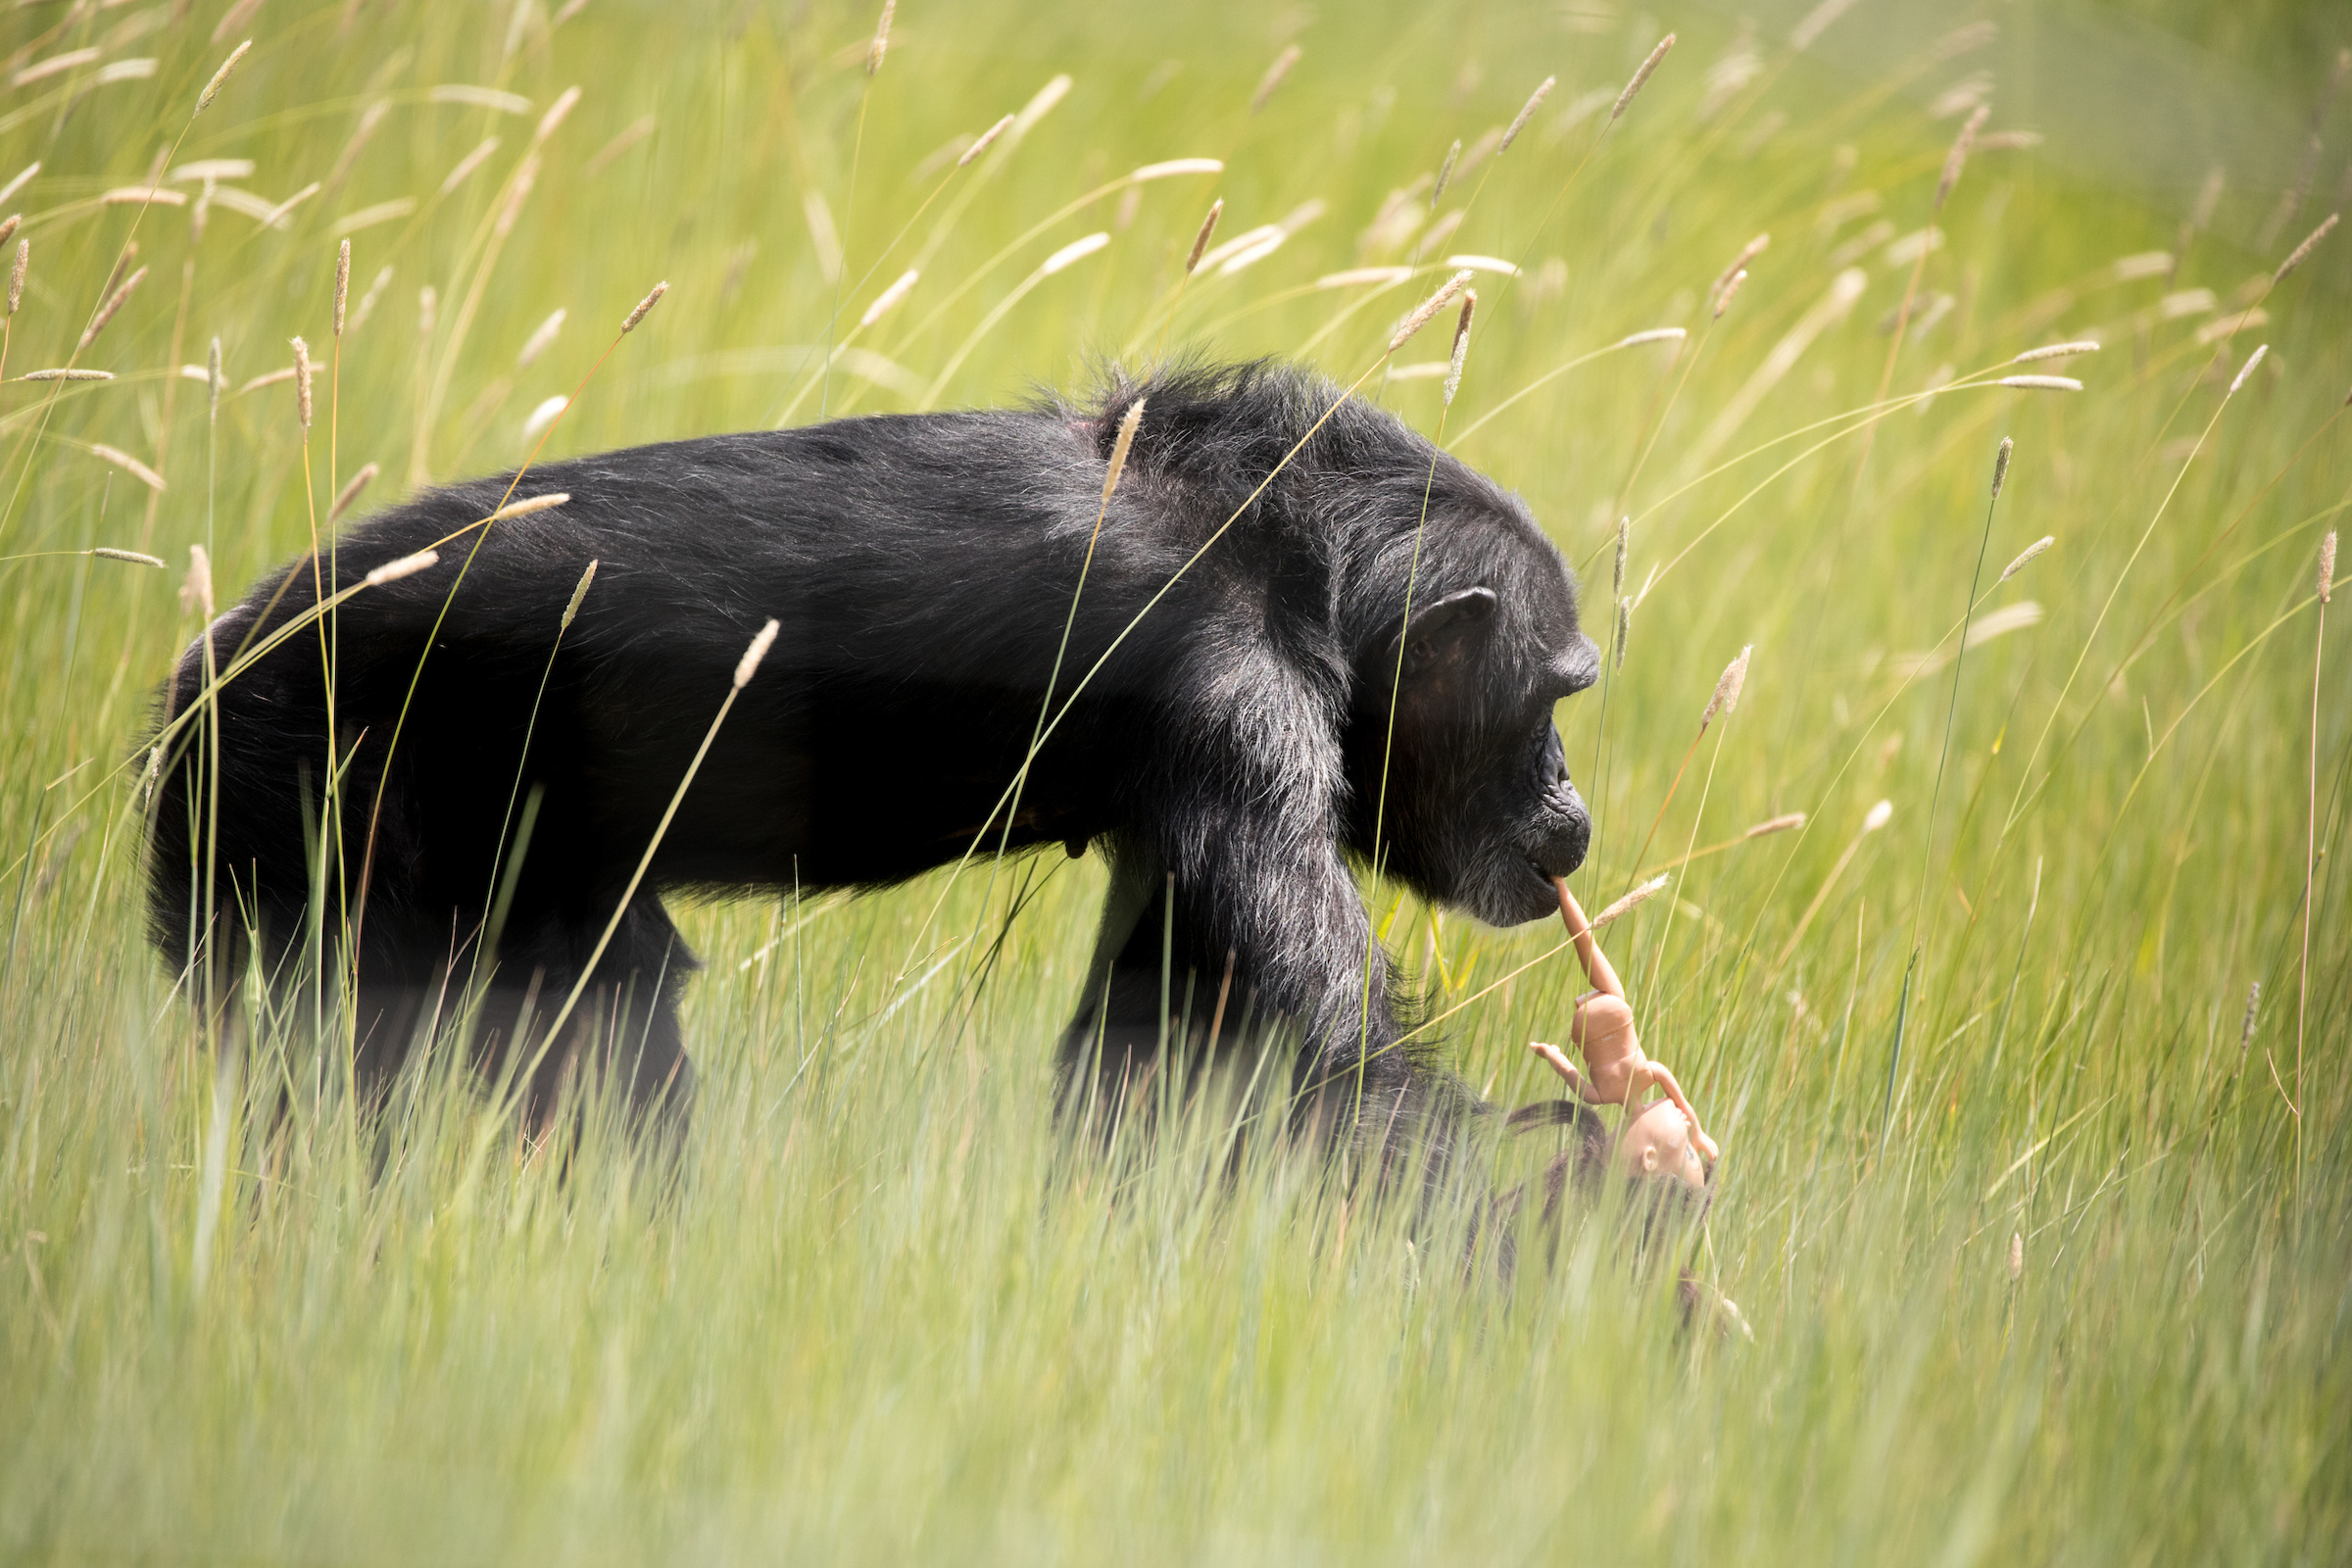 A chimp wanders the grass at the Chimpanzee Sanctuary Northwest near Cle Elum.